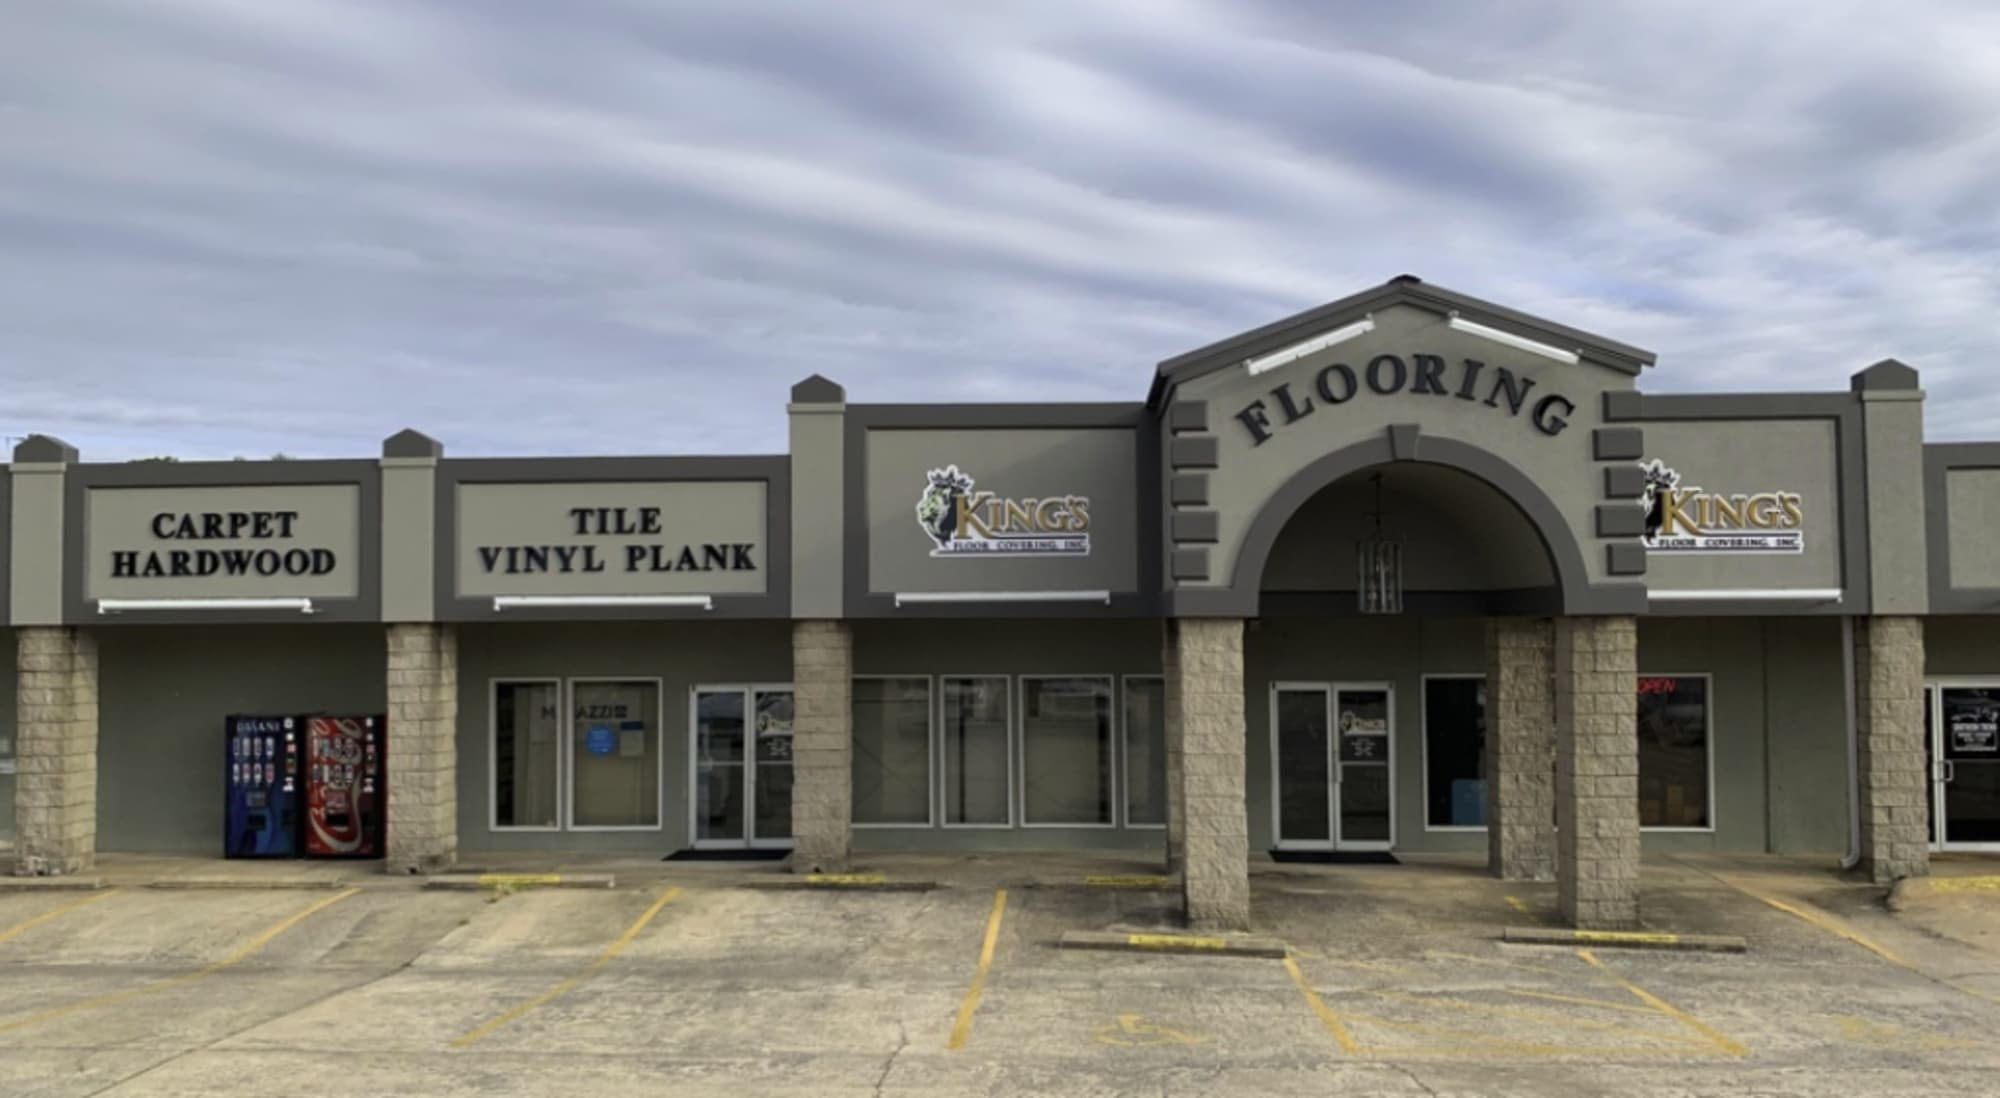 King's Floor Covering, Inc. - 622 W Sycamore St Fayetteville, AR 72703